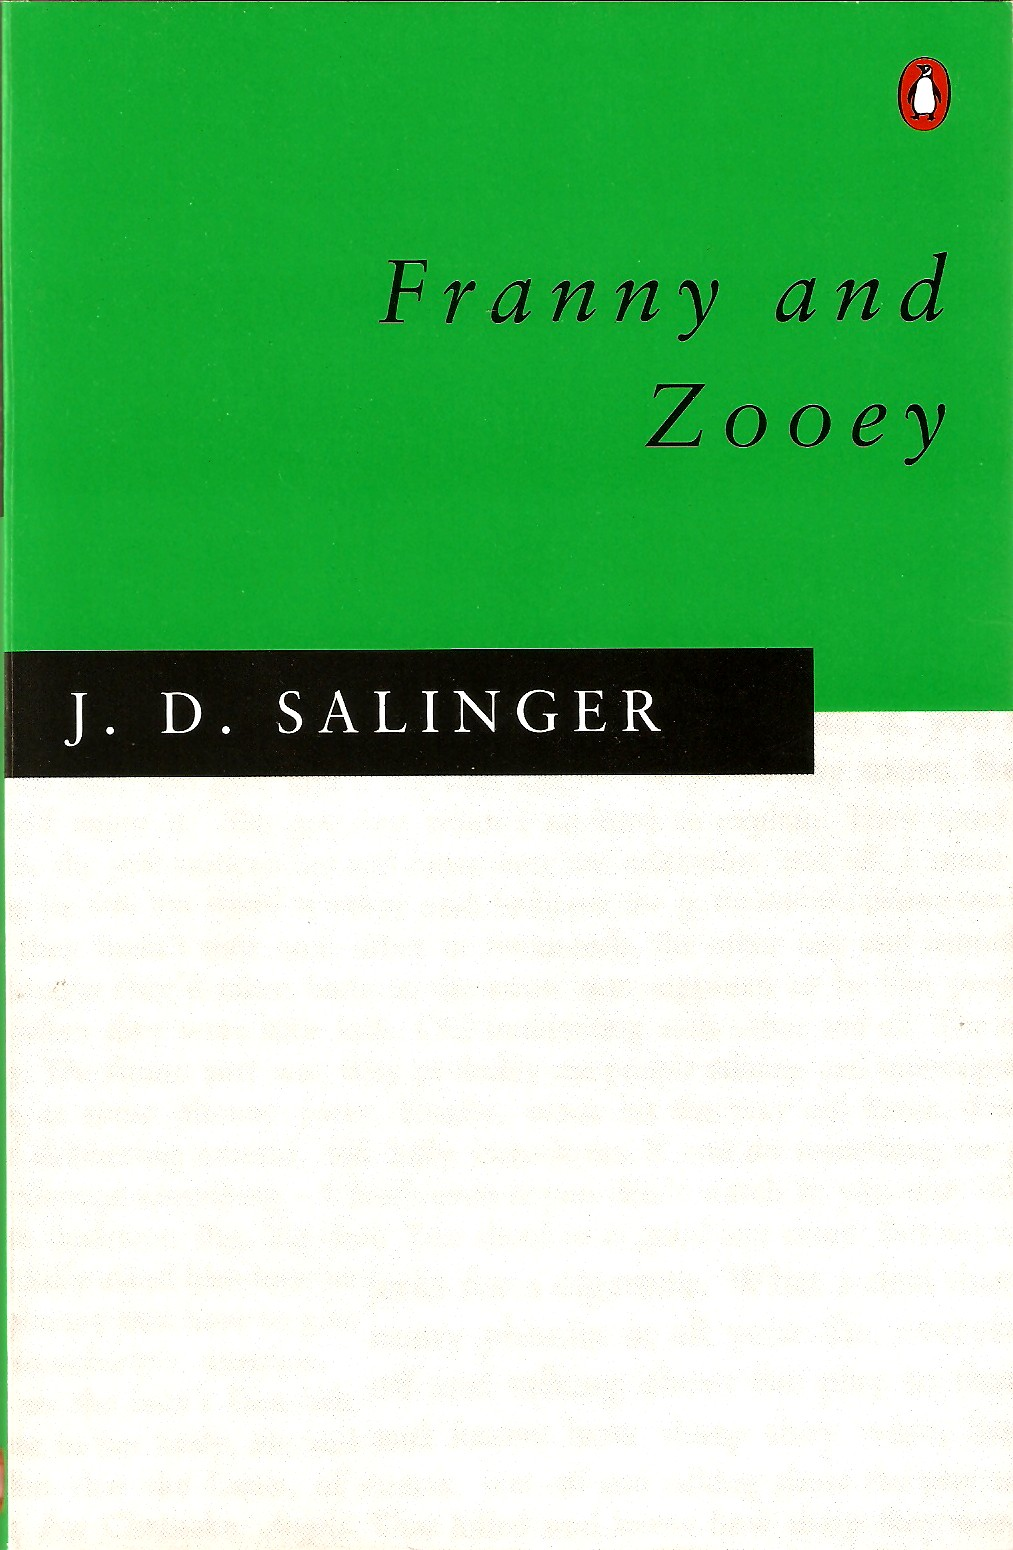 significance of the fat lady in the story of franny and zooey